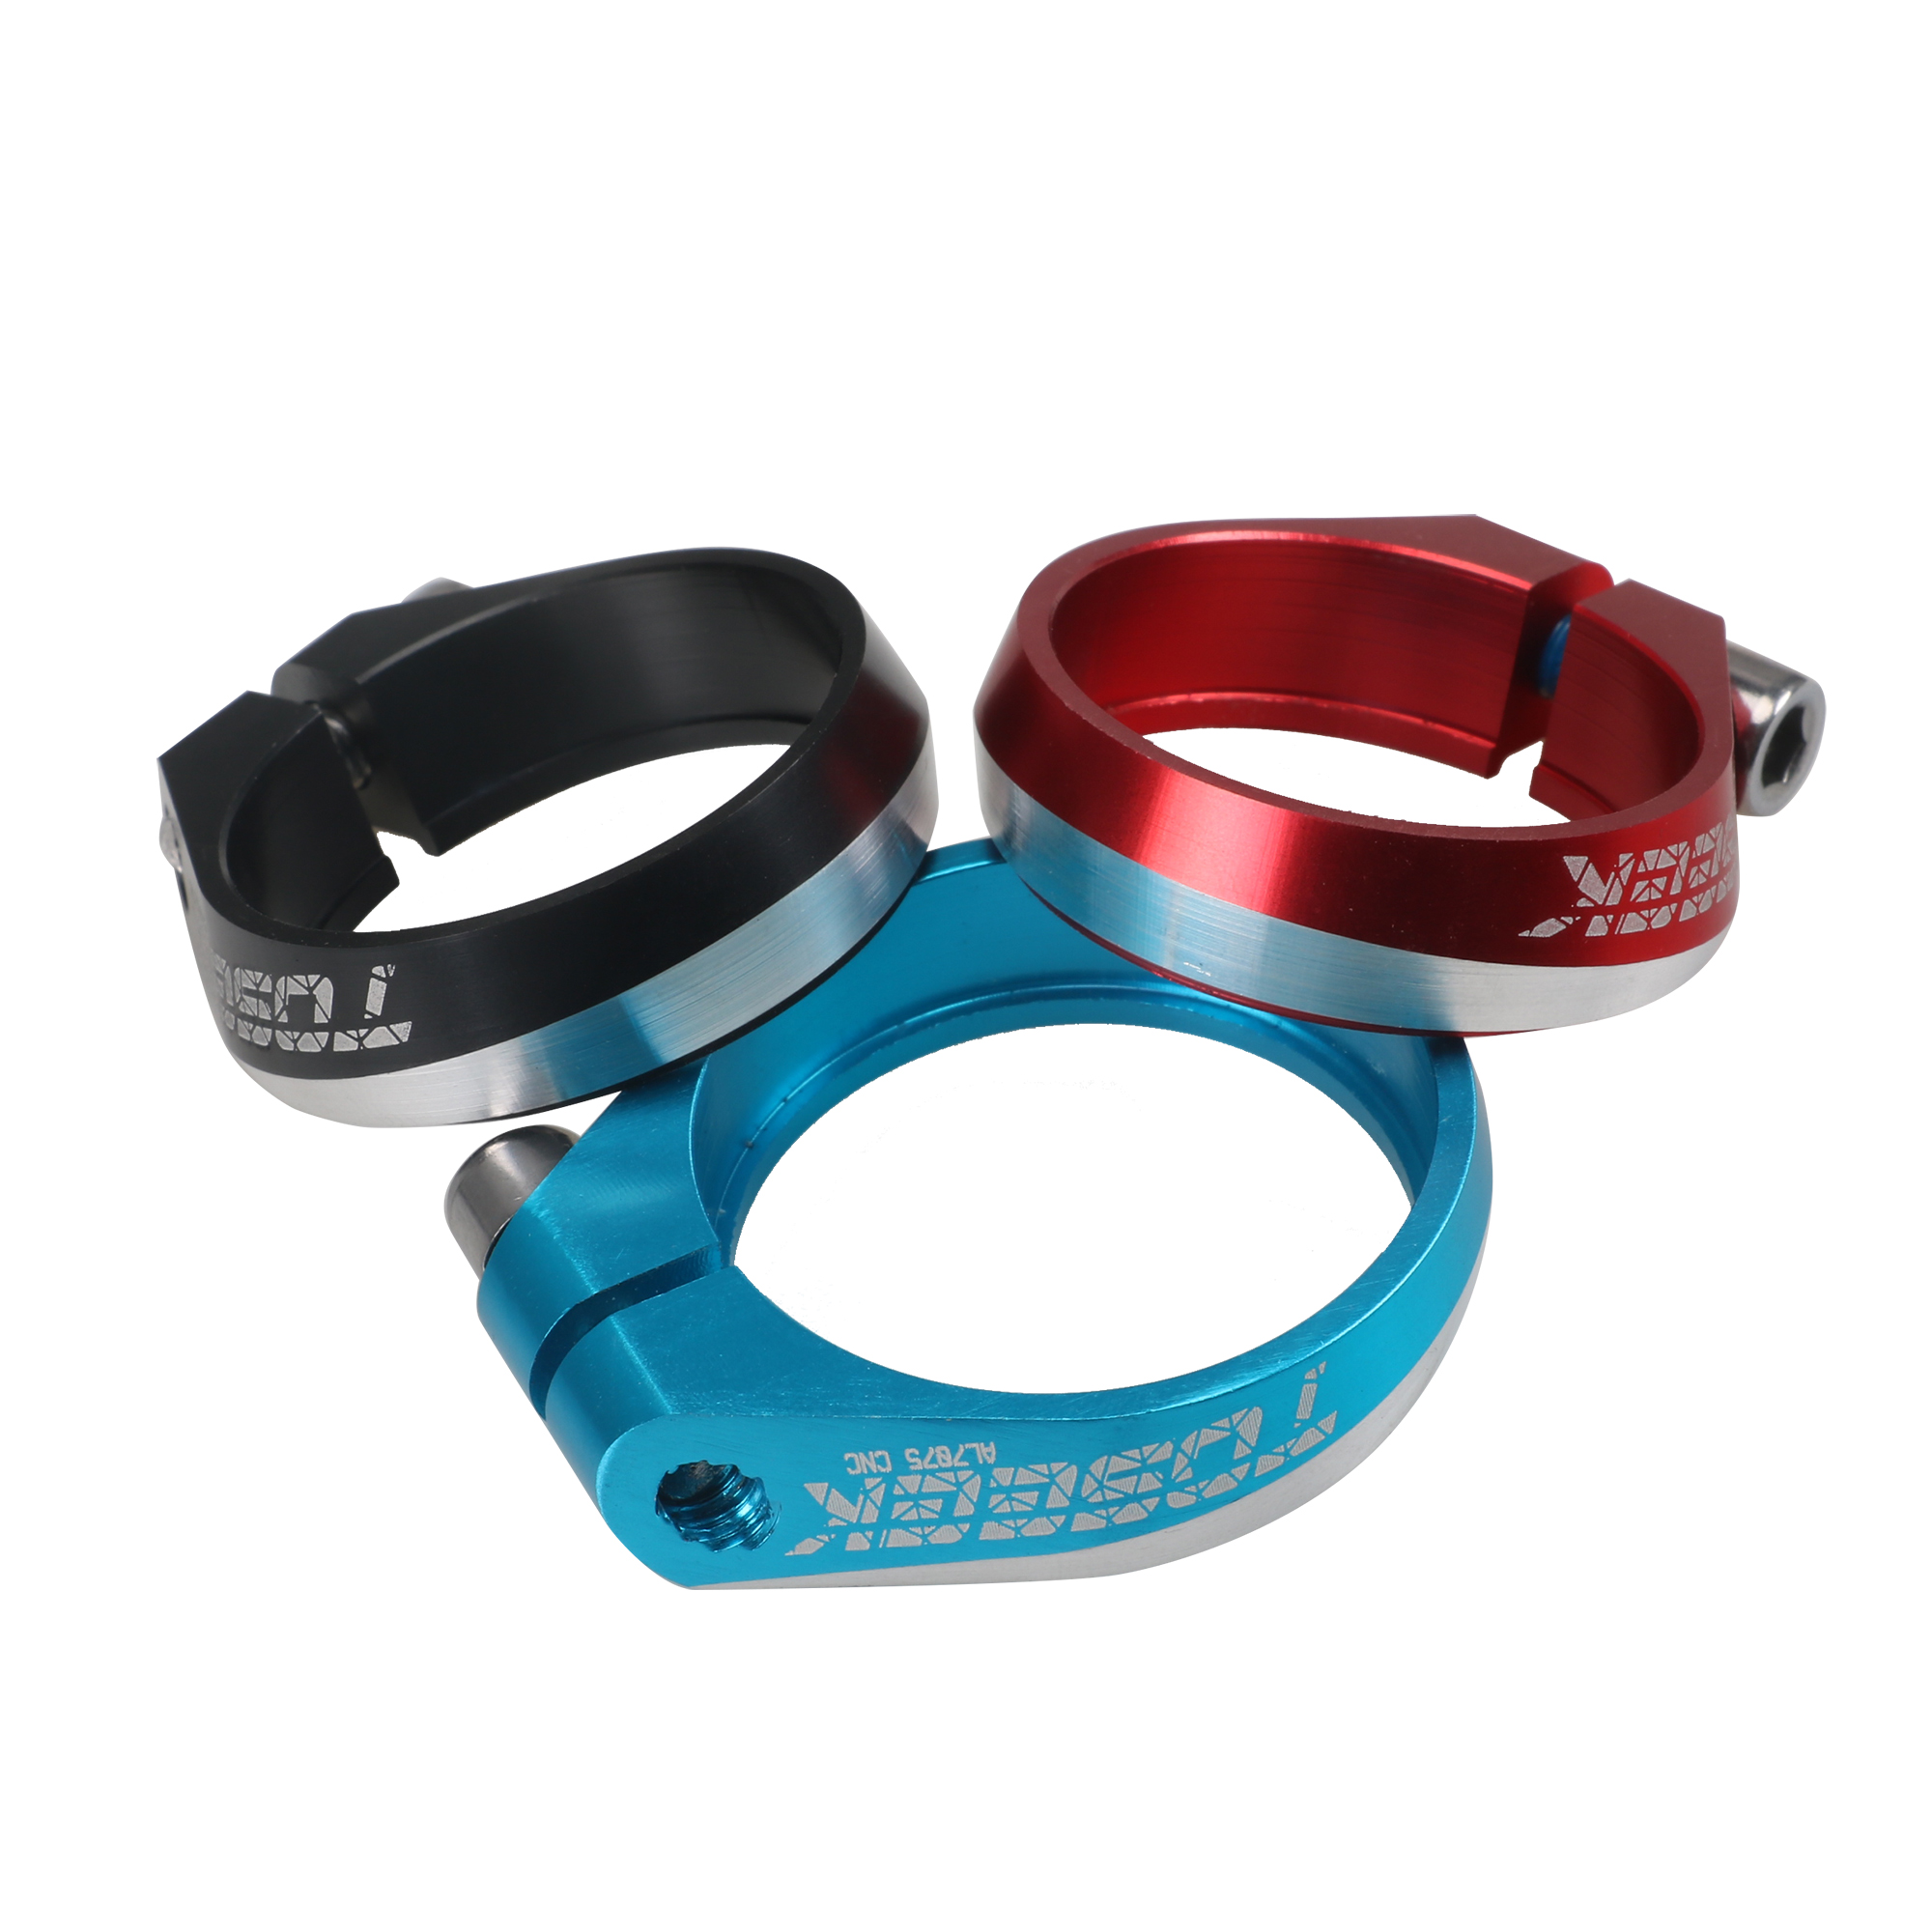 34.9 mm Red MTB Bike Cycling Road Saddle Bicycle Seat Post Clamp Aluminum